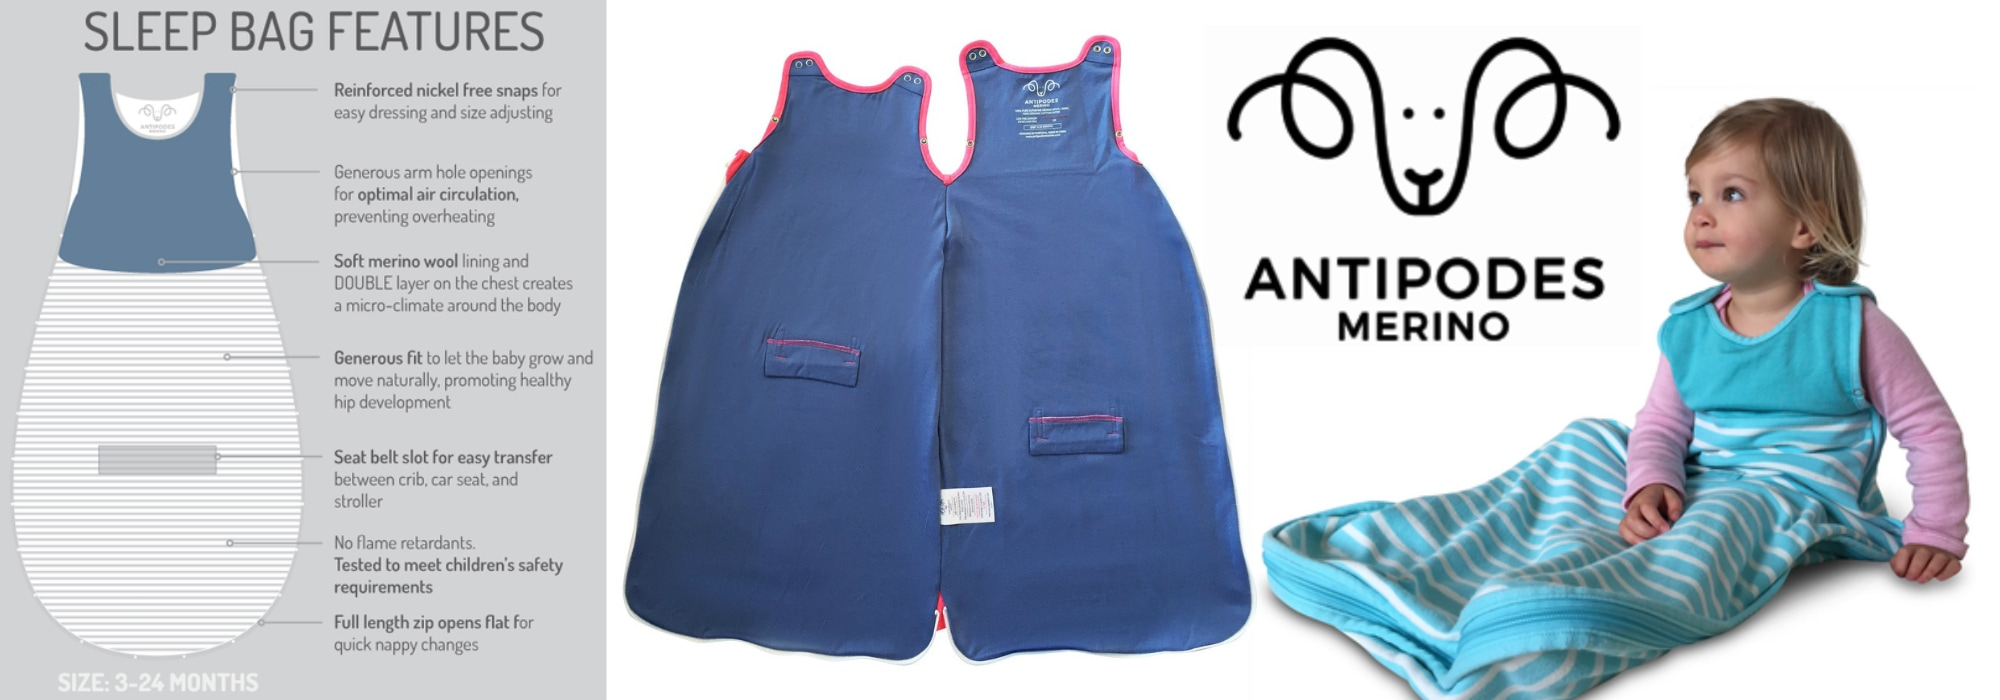 Win an Antipodes Merino Sleeping Bag in US Japan Fam's $500 value